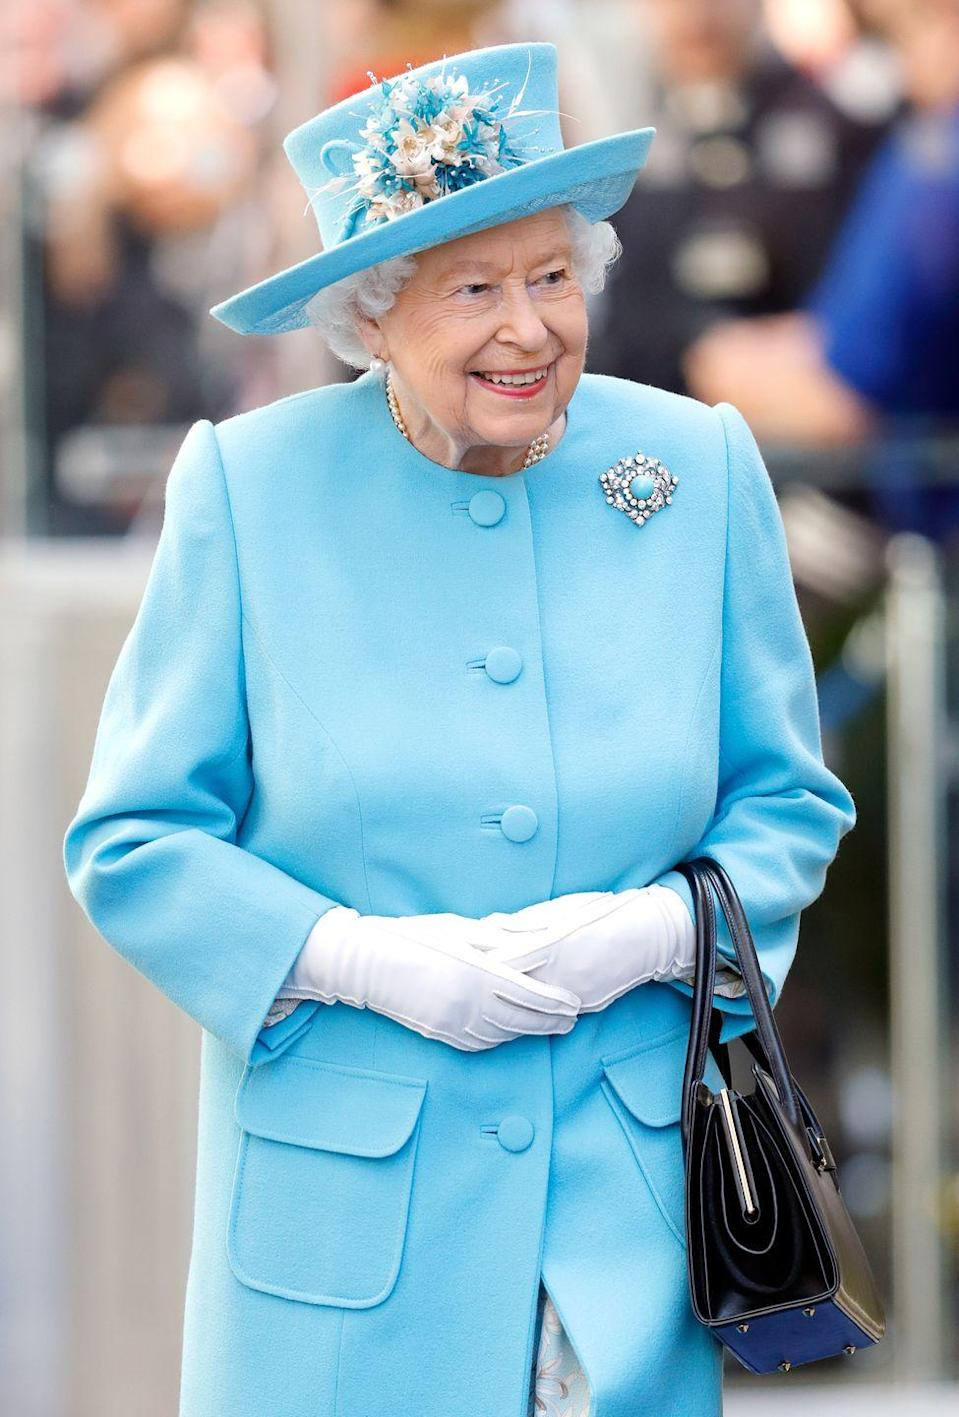 <p>First, white gloves have simply always been a part of the Queen's signature style; would it really seem like the Queen if you didn't see that white-gloved wave? Reason number two is simple: protecting her hands. After all, you shake a lot of hands when you're the Queen!</p>